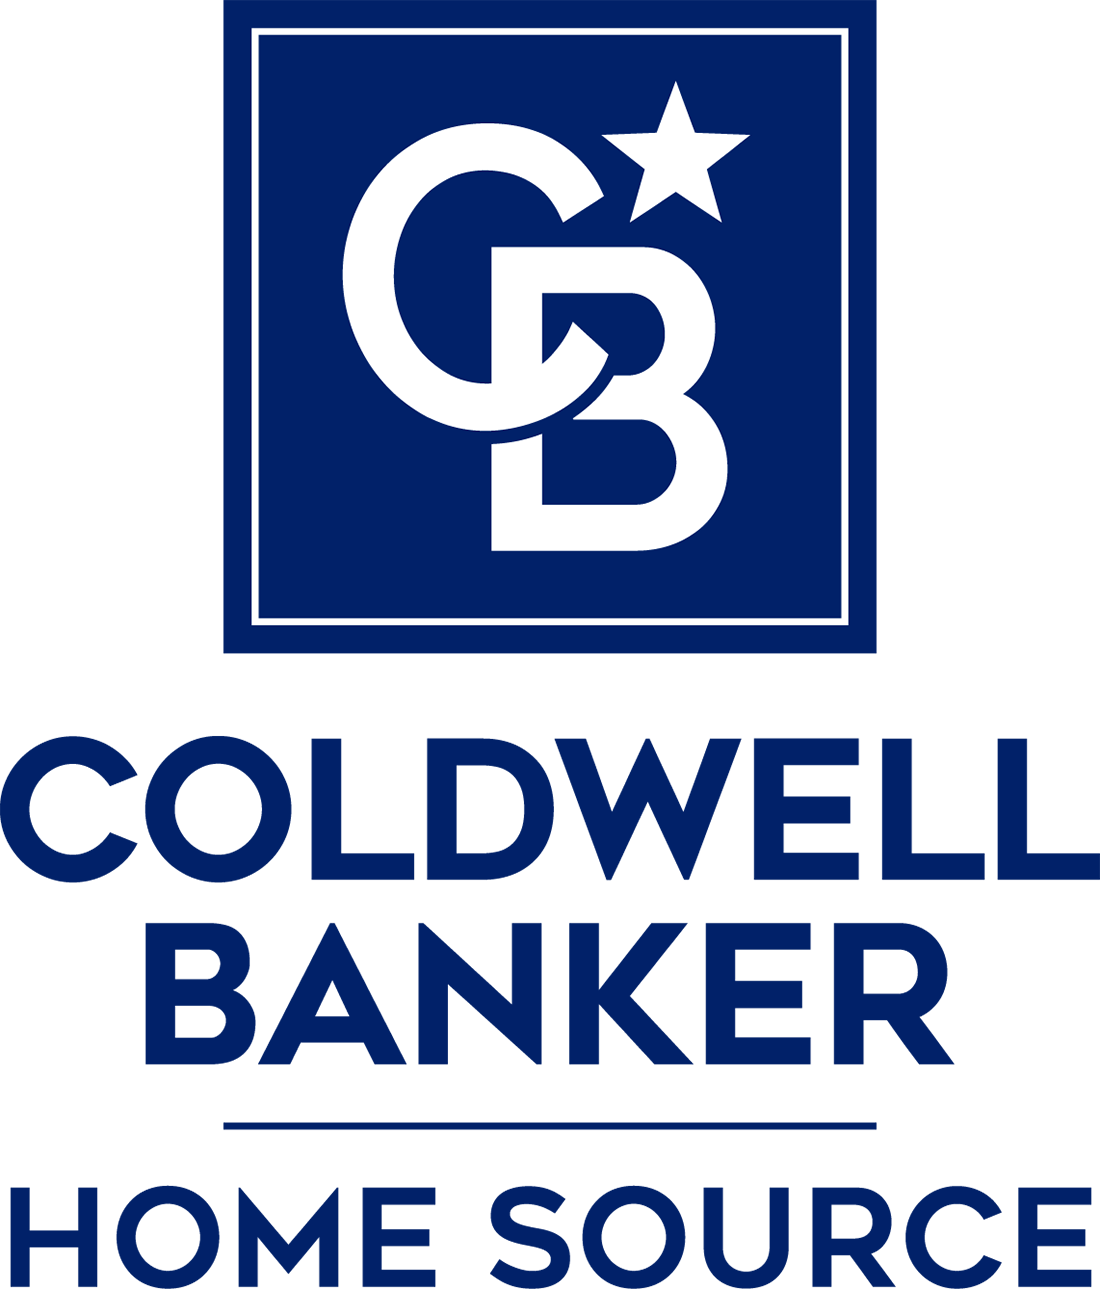 Bret Swanson - Coldwell Banker Home Source Logo